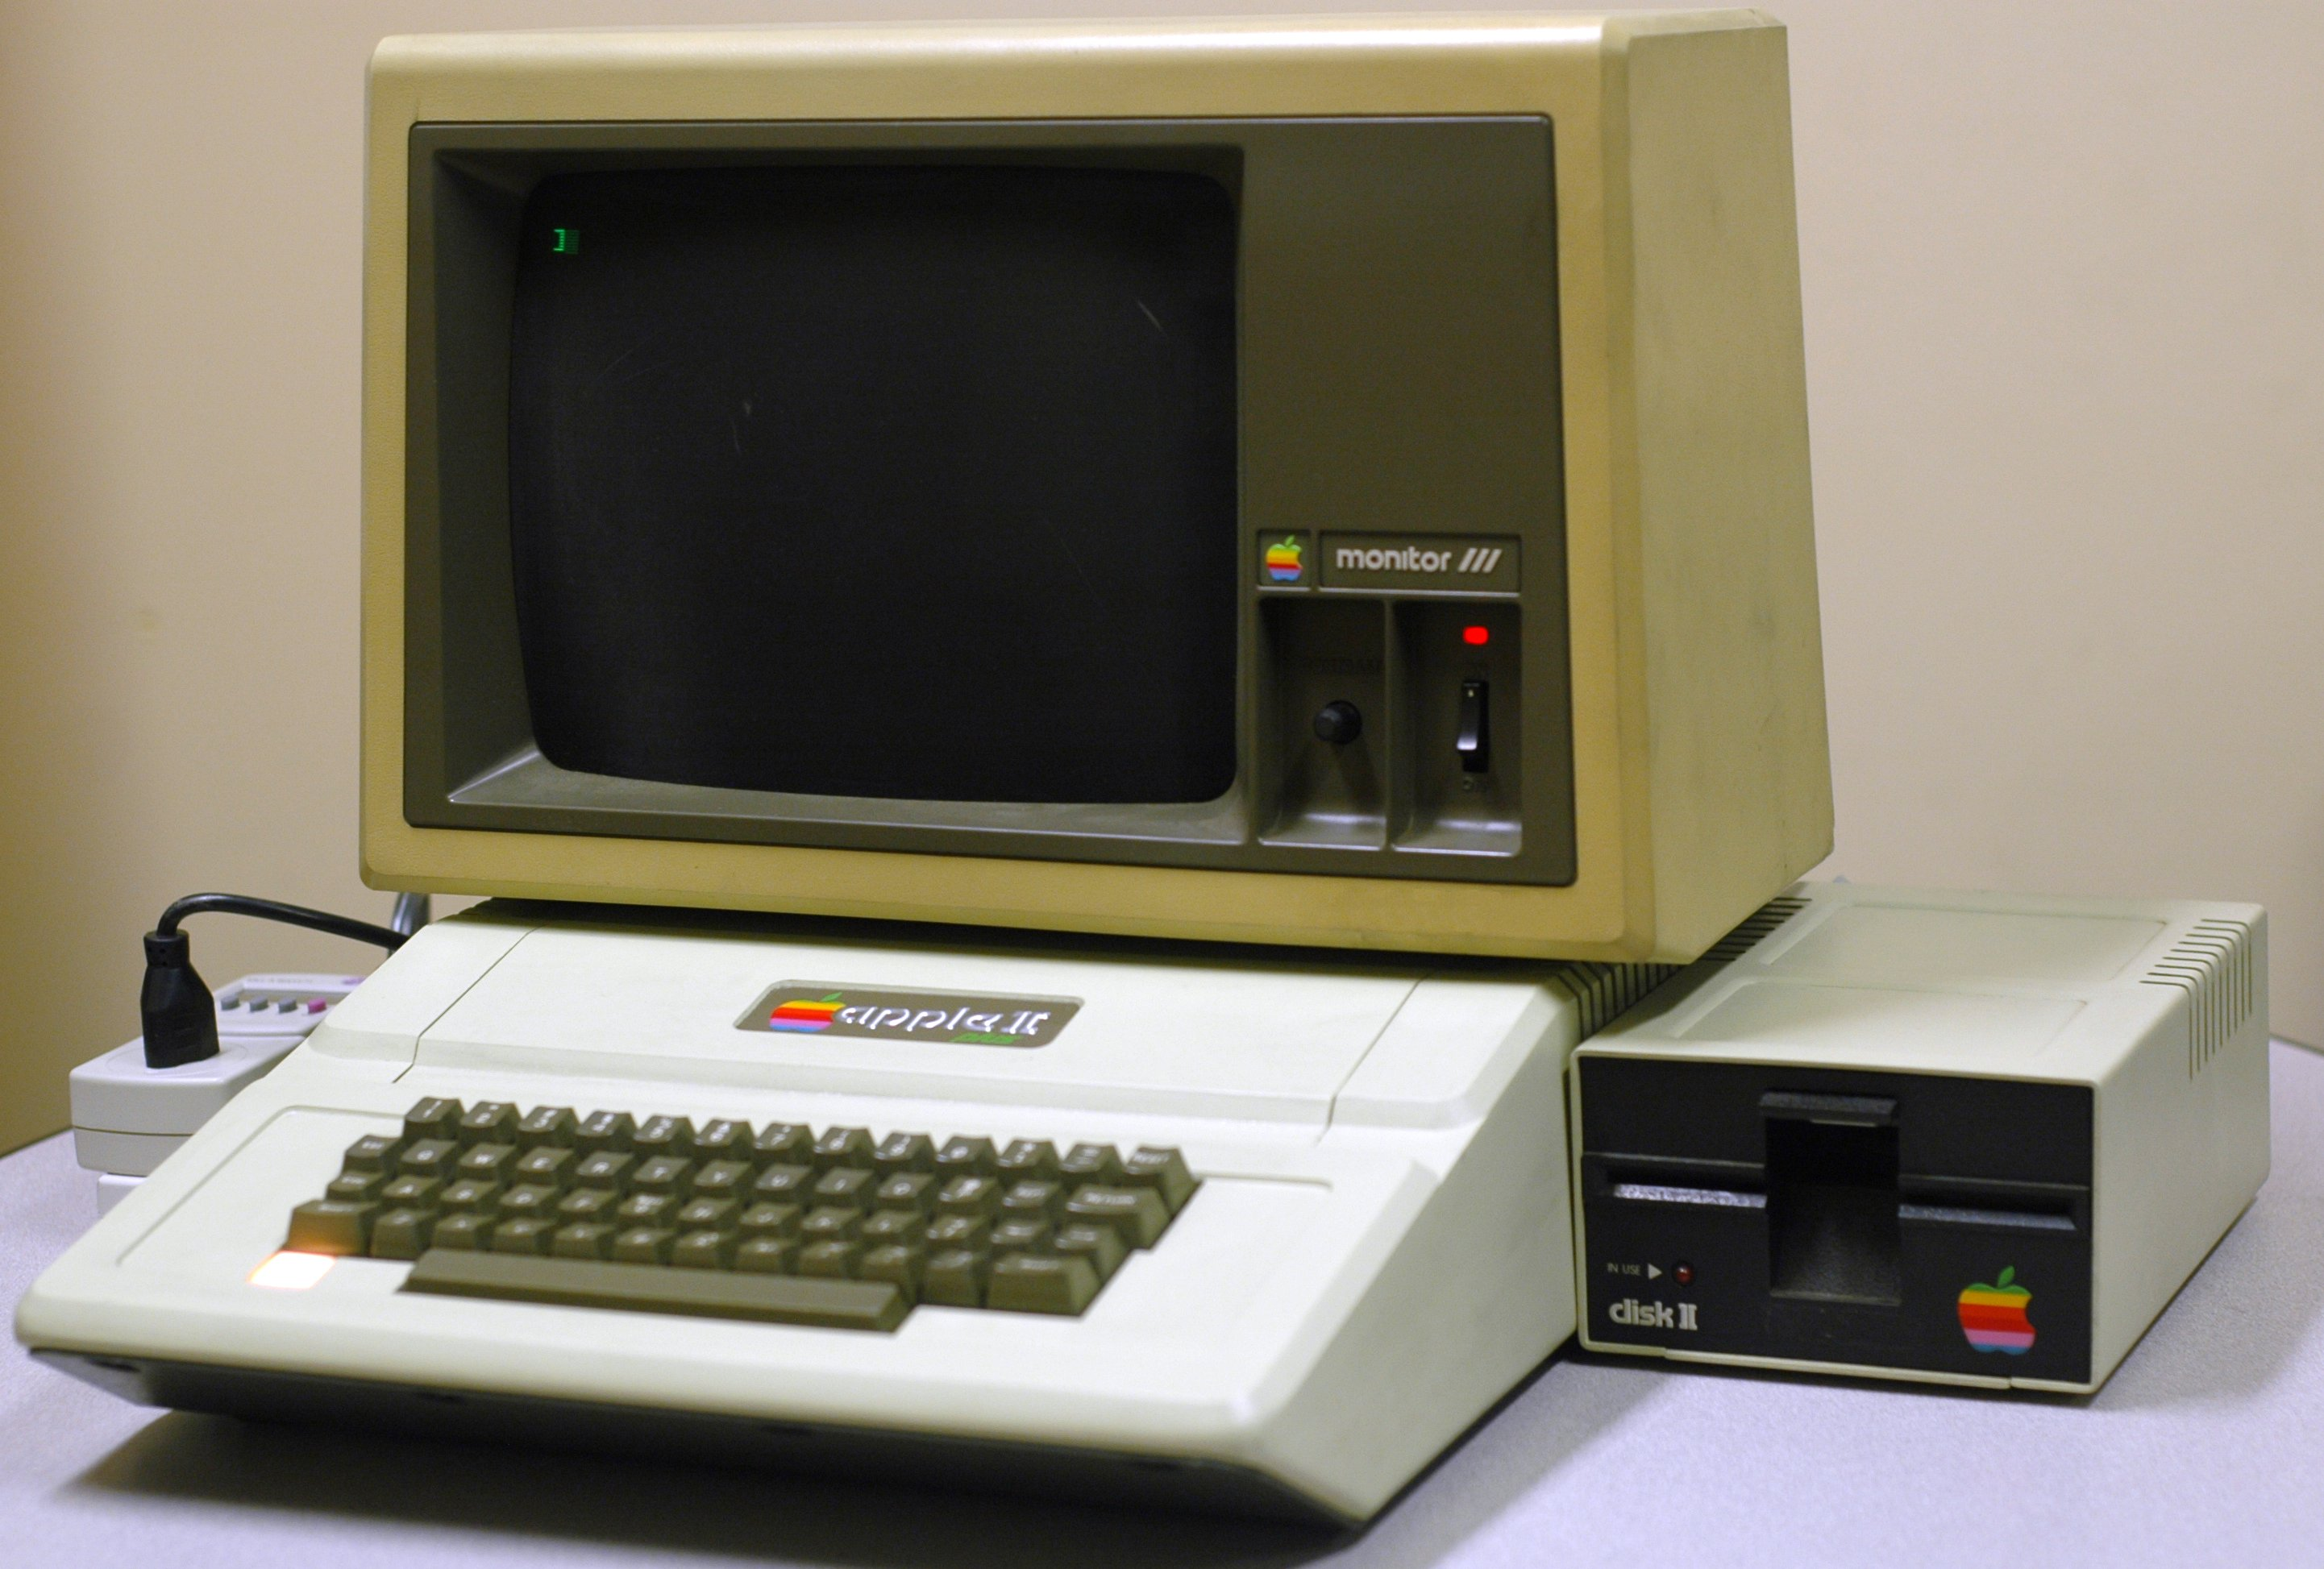 What is an apple ii